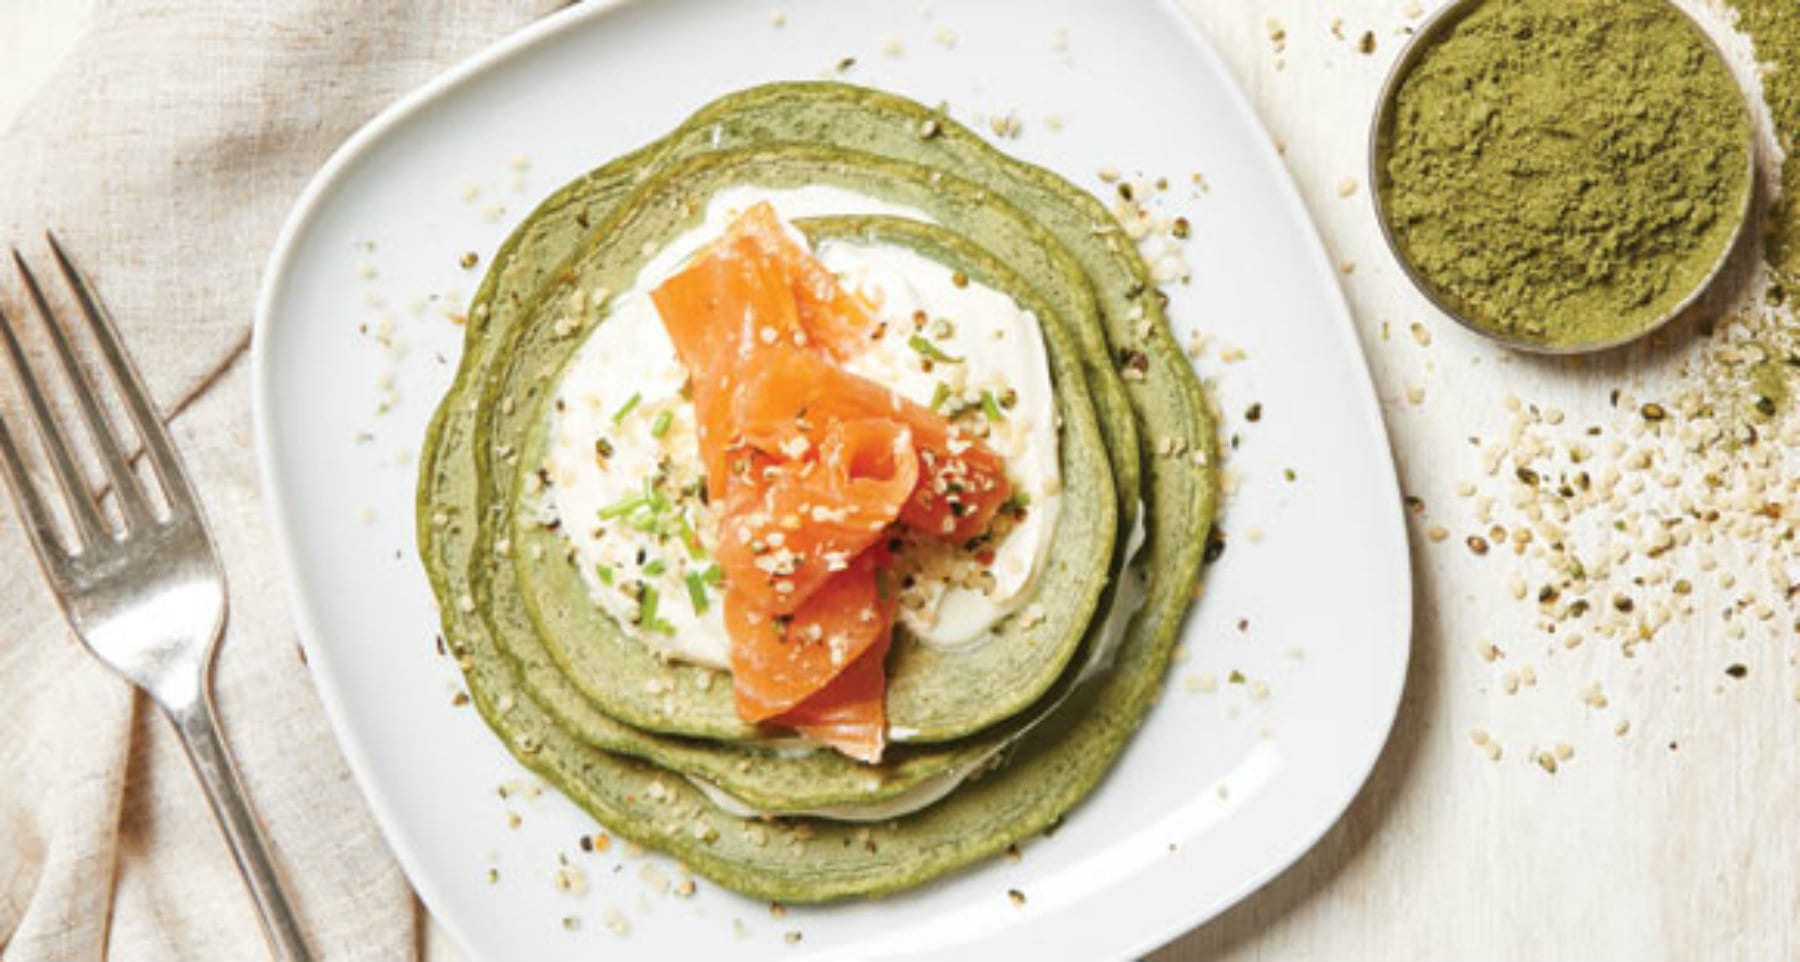 Healthy Lunch Ideas | Spinach Protein Pancakes with Salmon & Crème Fraîche